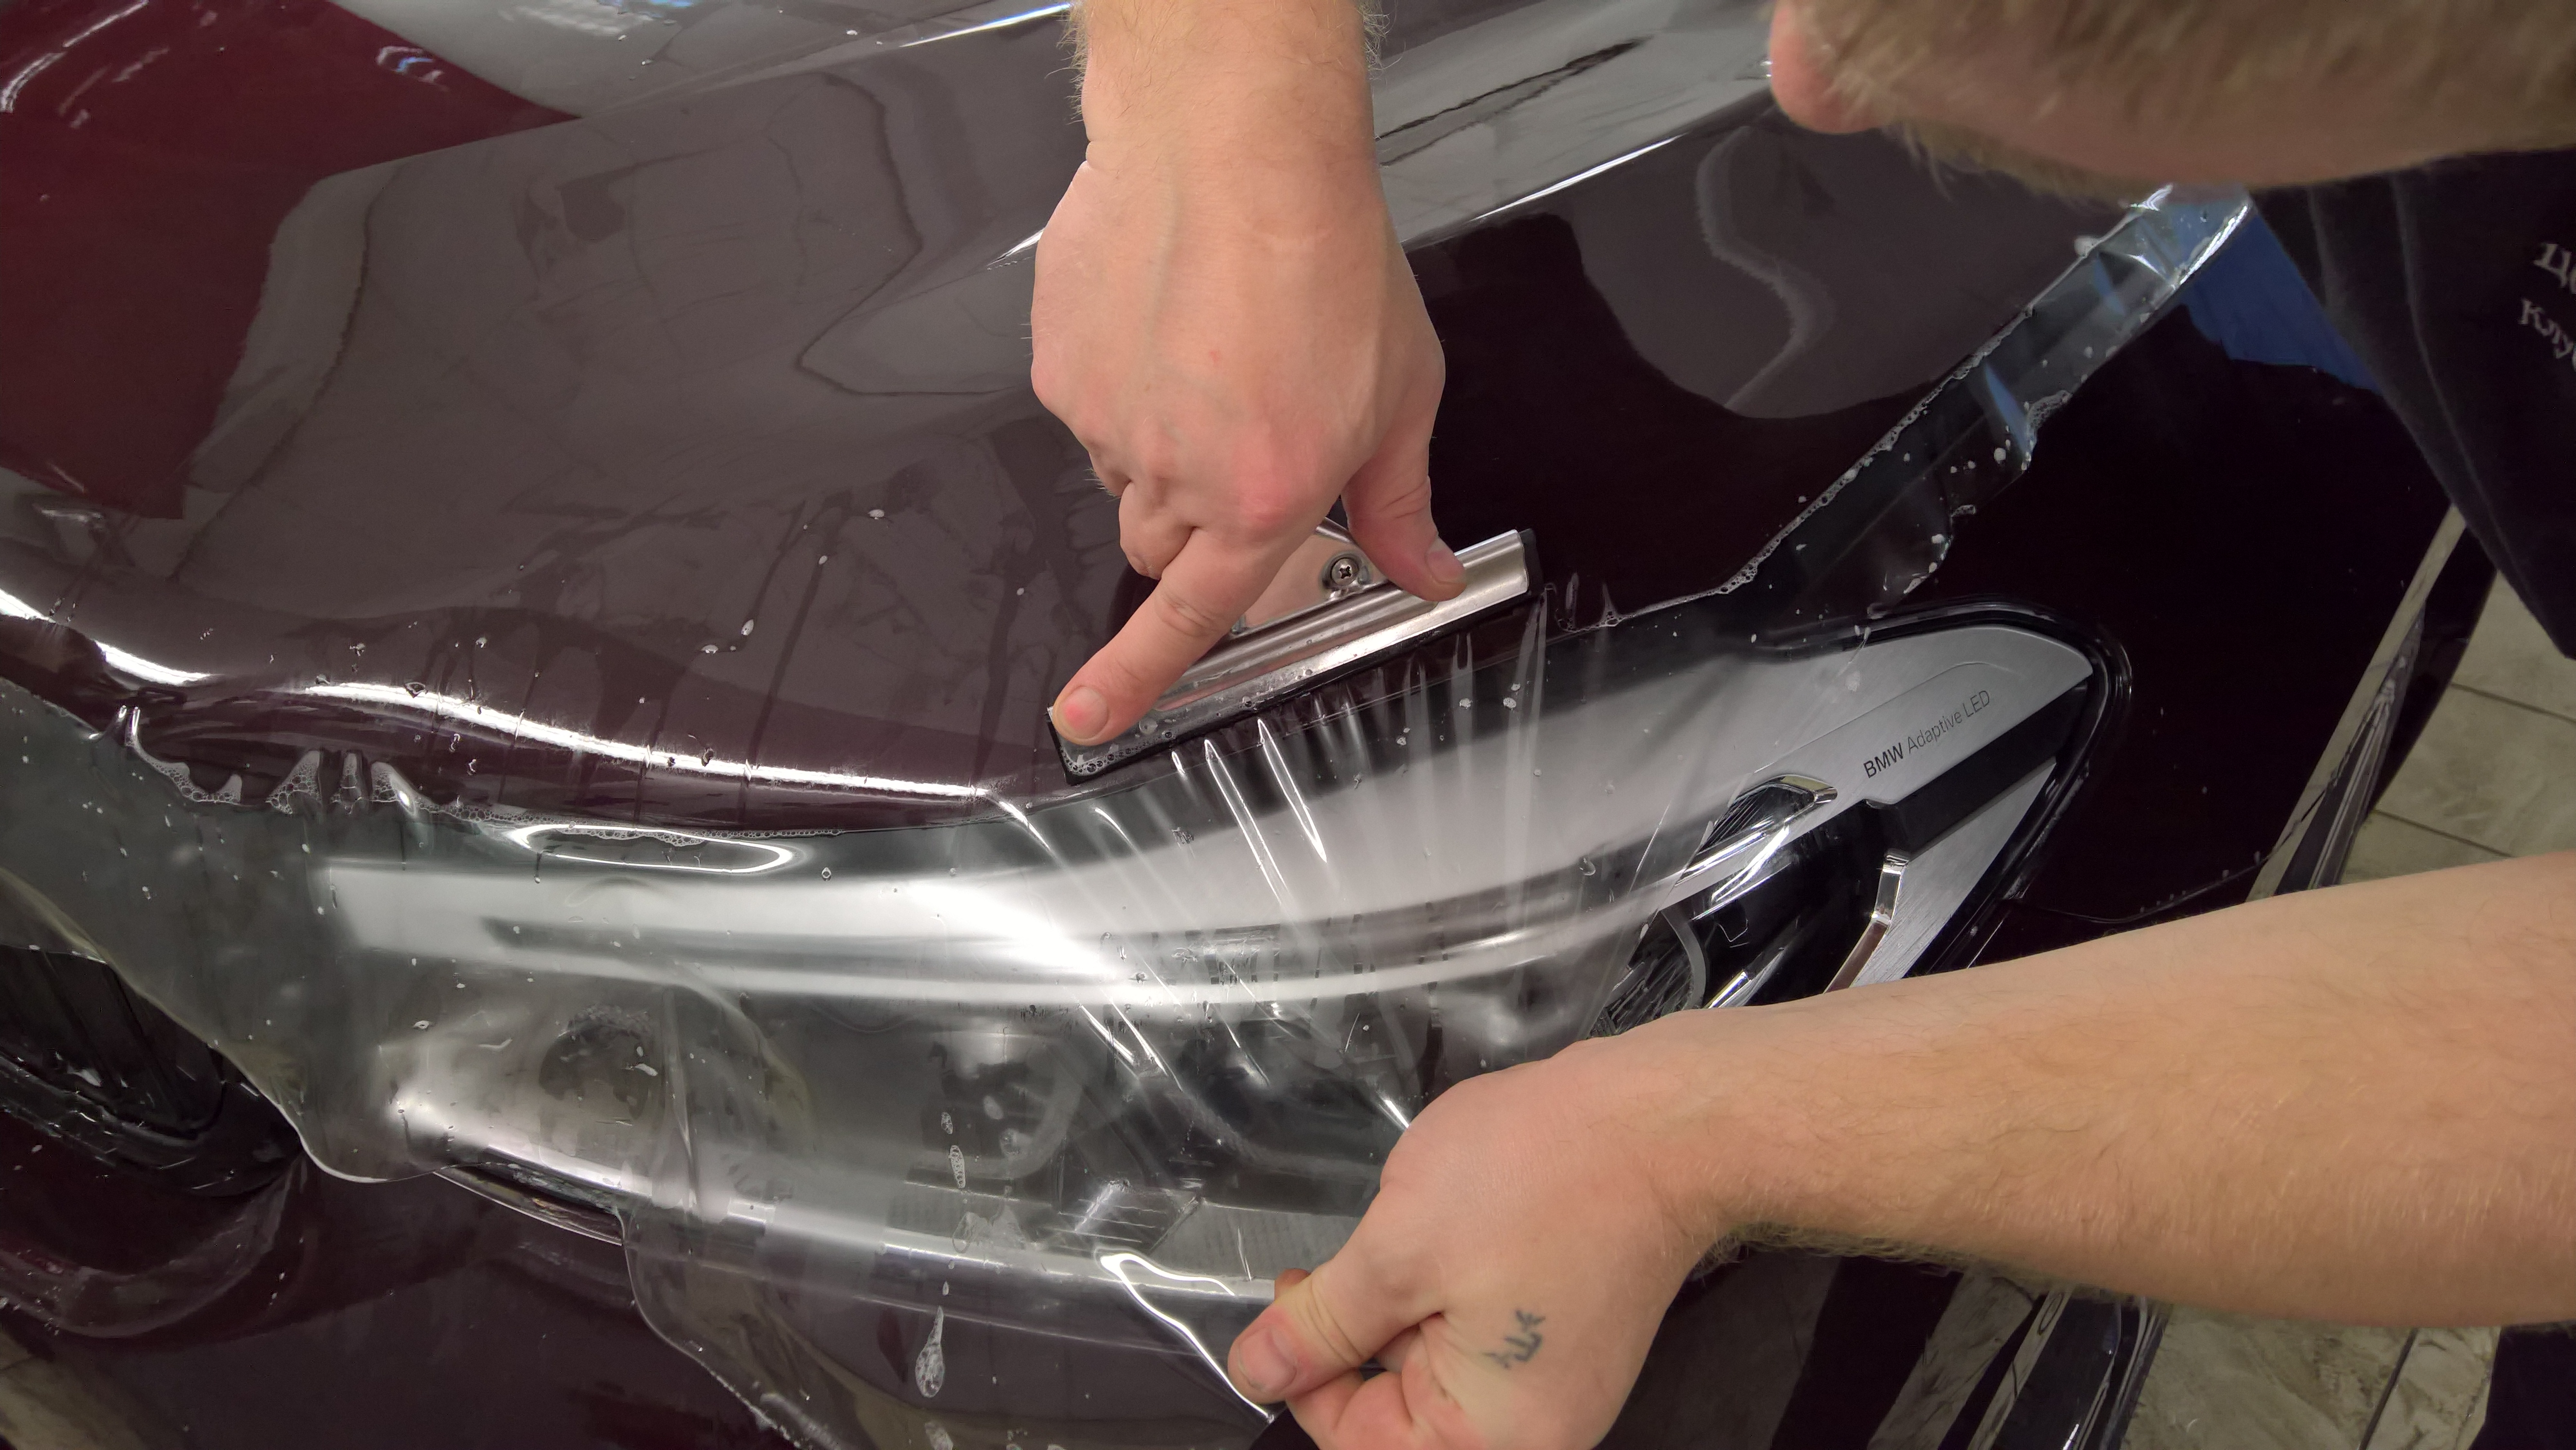 Vehicle Paint Manufacturers Paint Protection Film Wikipedia